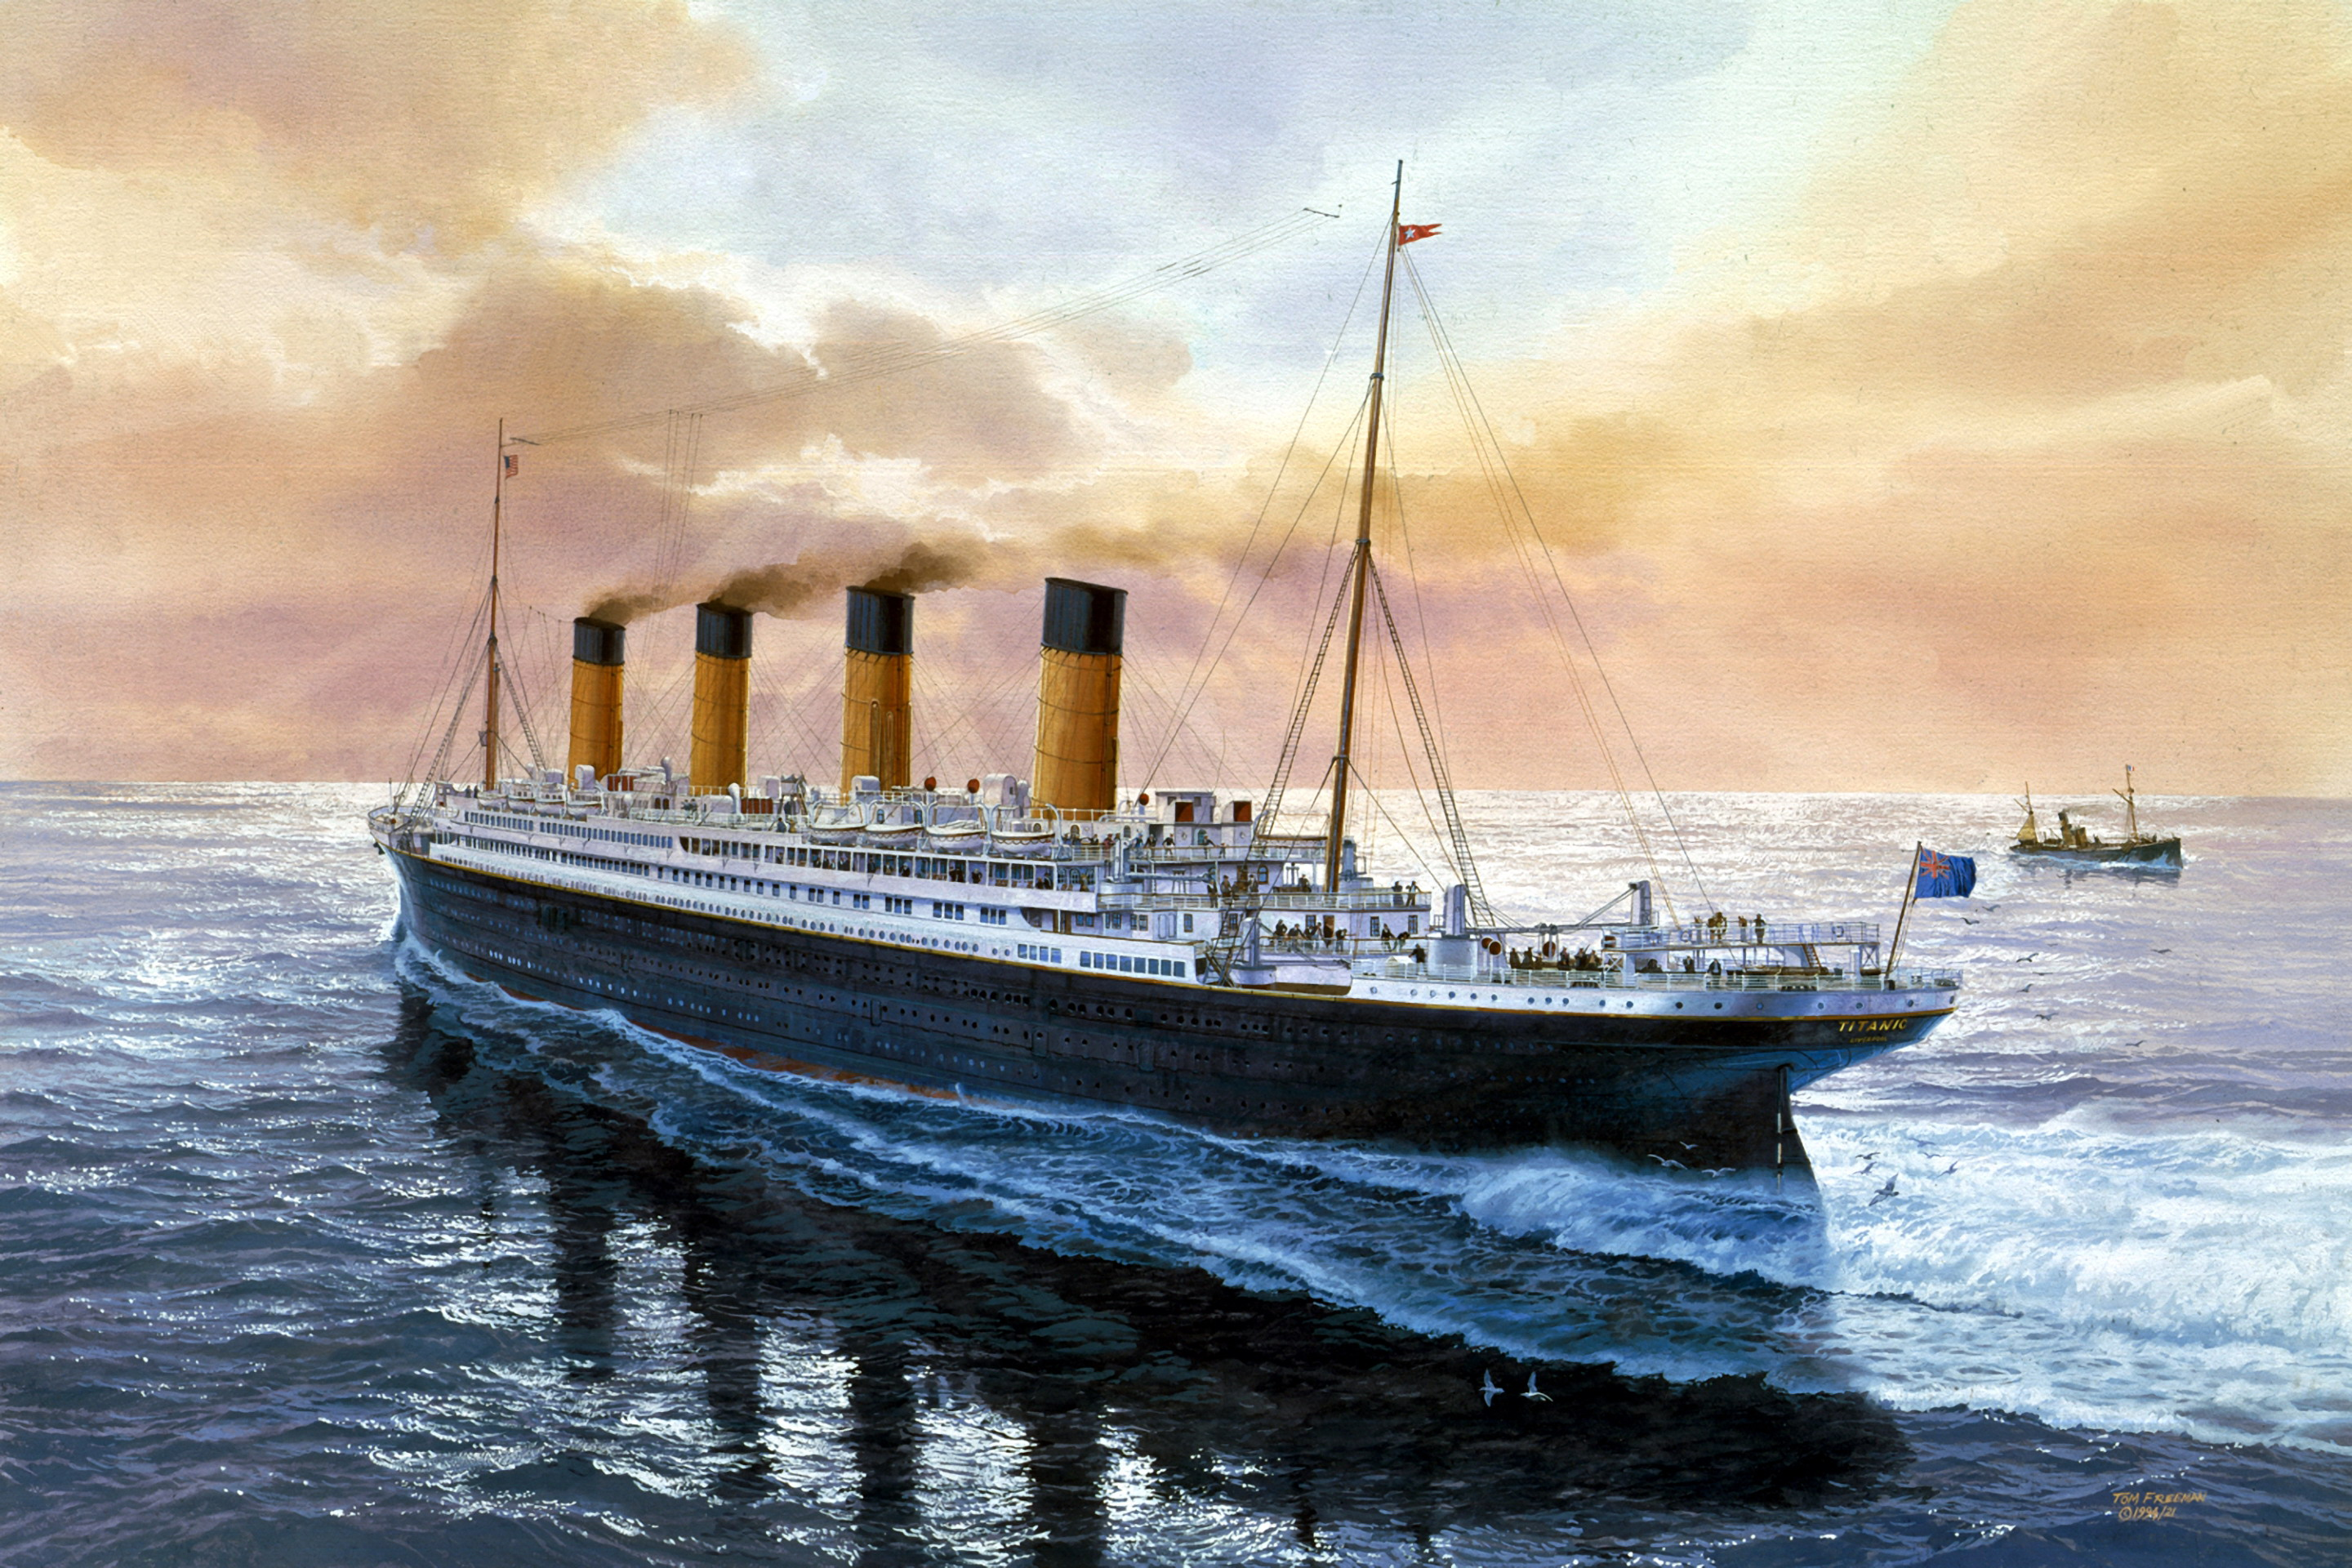 titanic full hd wallpaper and background image | 2880x1920 | id:209382